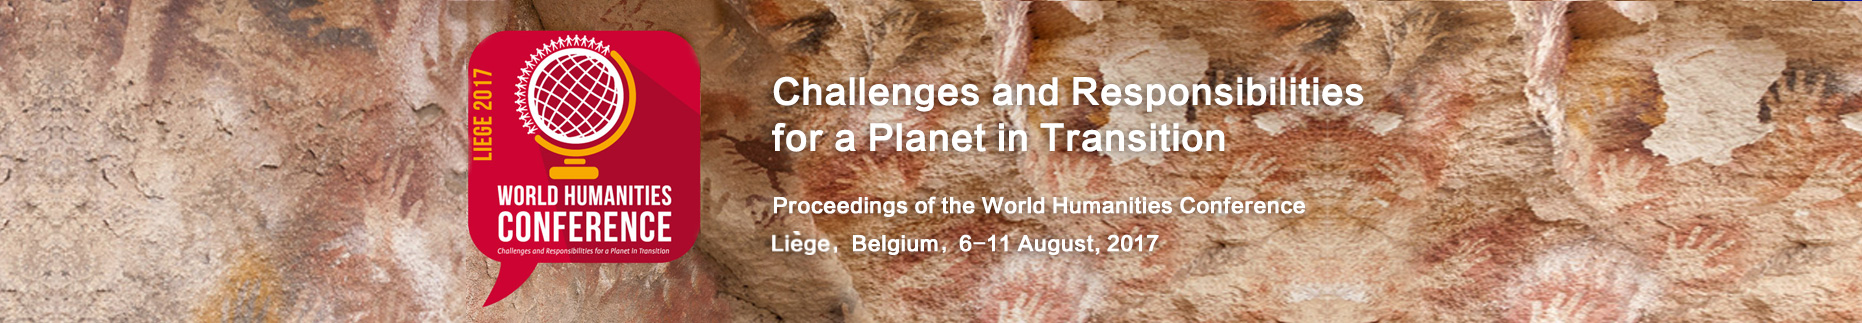 WHC Proceedings: Challenges and Responsibilities for a Planet in Transition  http://www.cipsh.net/web/news-251.htm